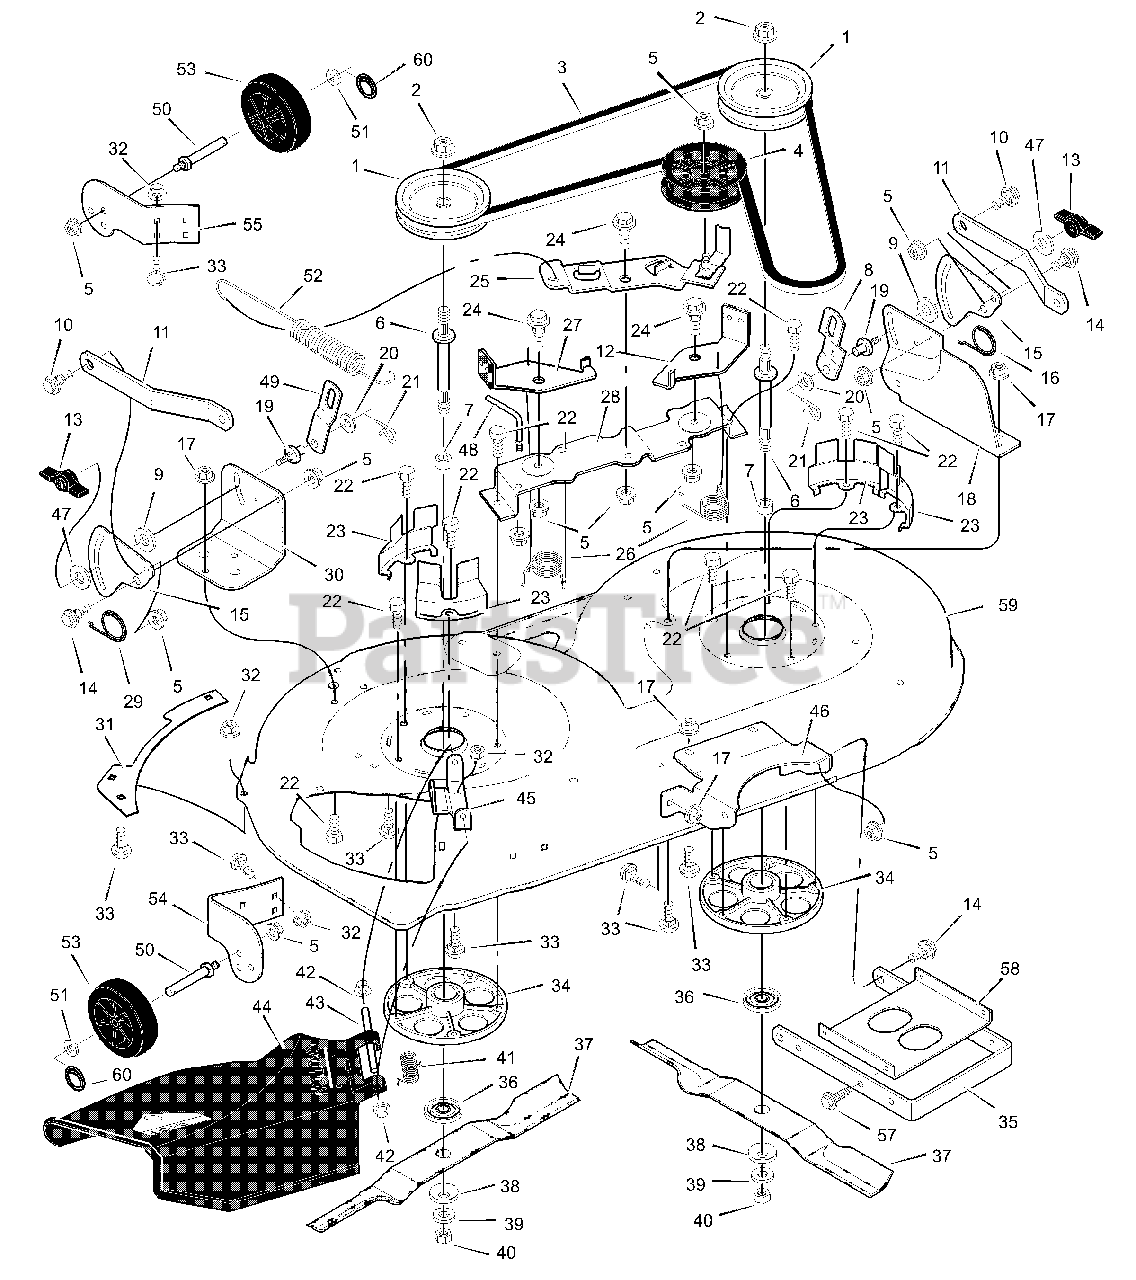 Murray Parts on the Mower Housing Diagram for 42590x92A